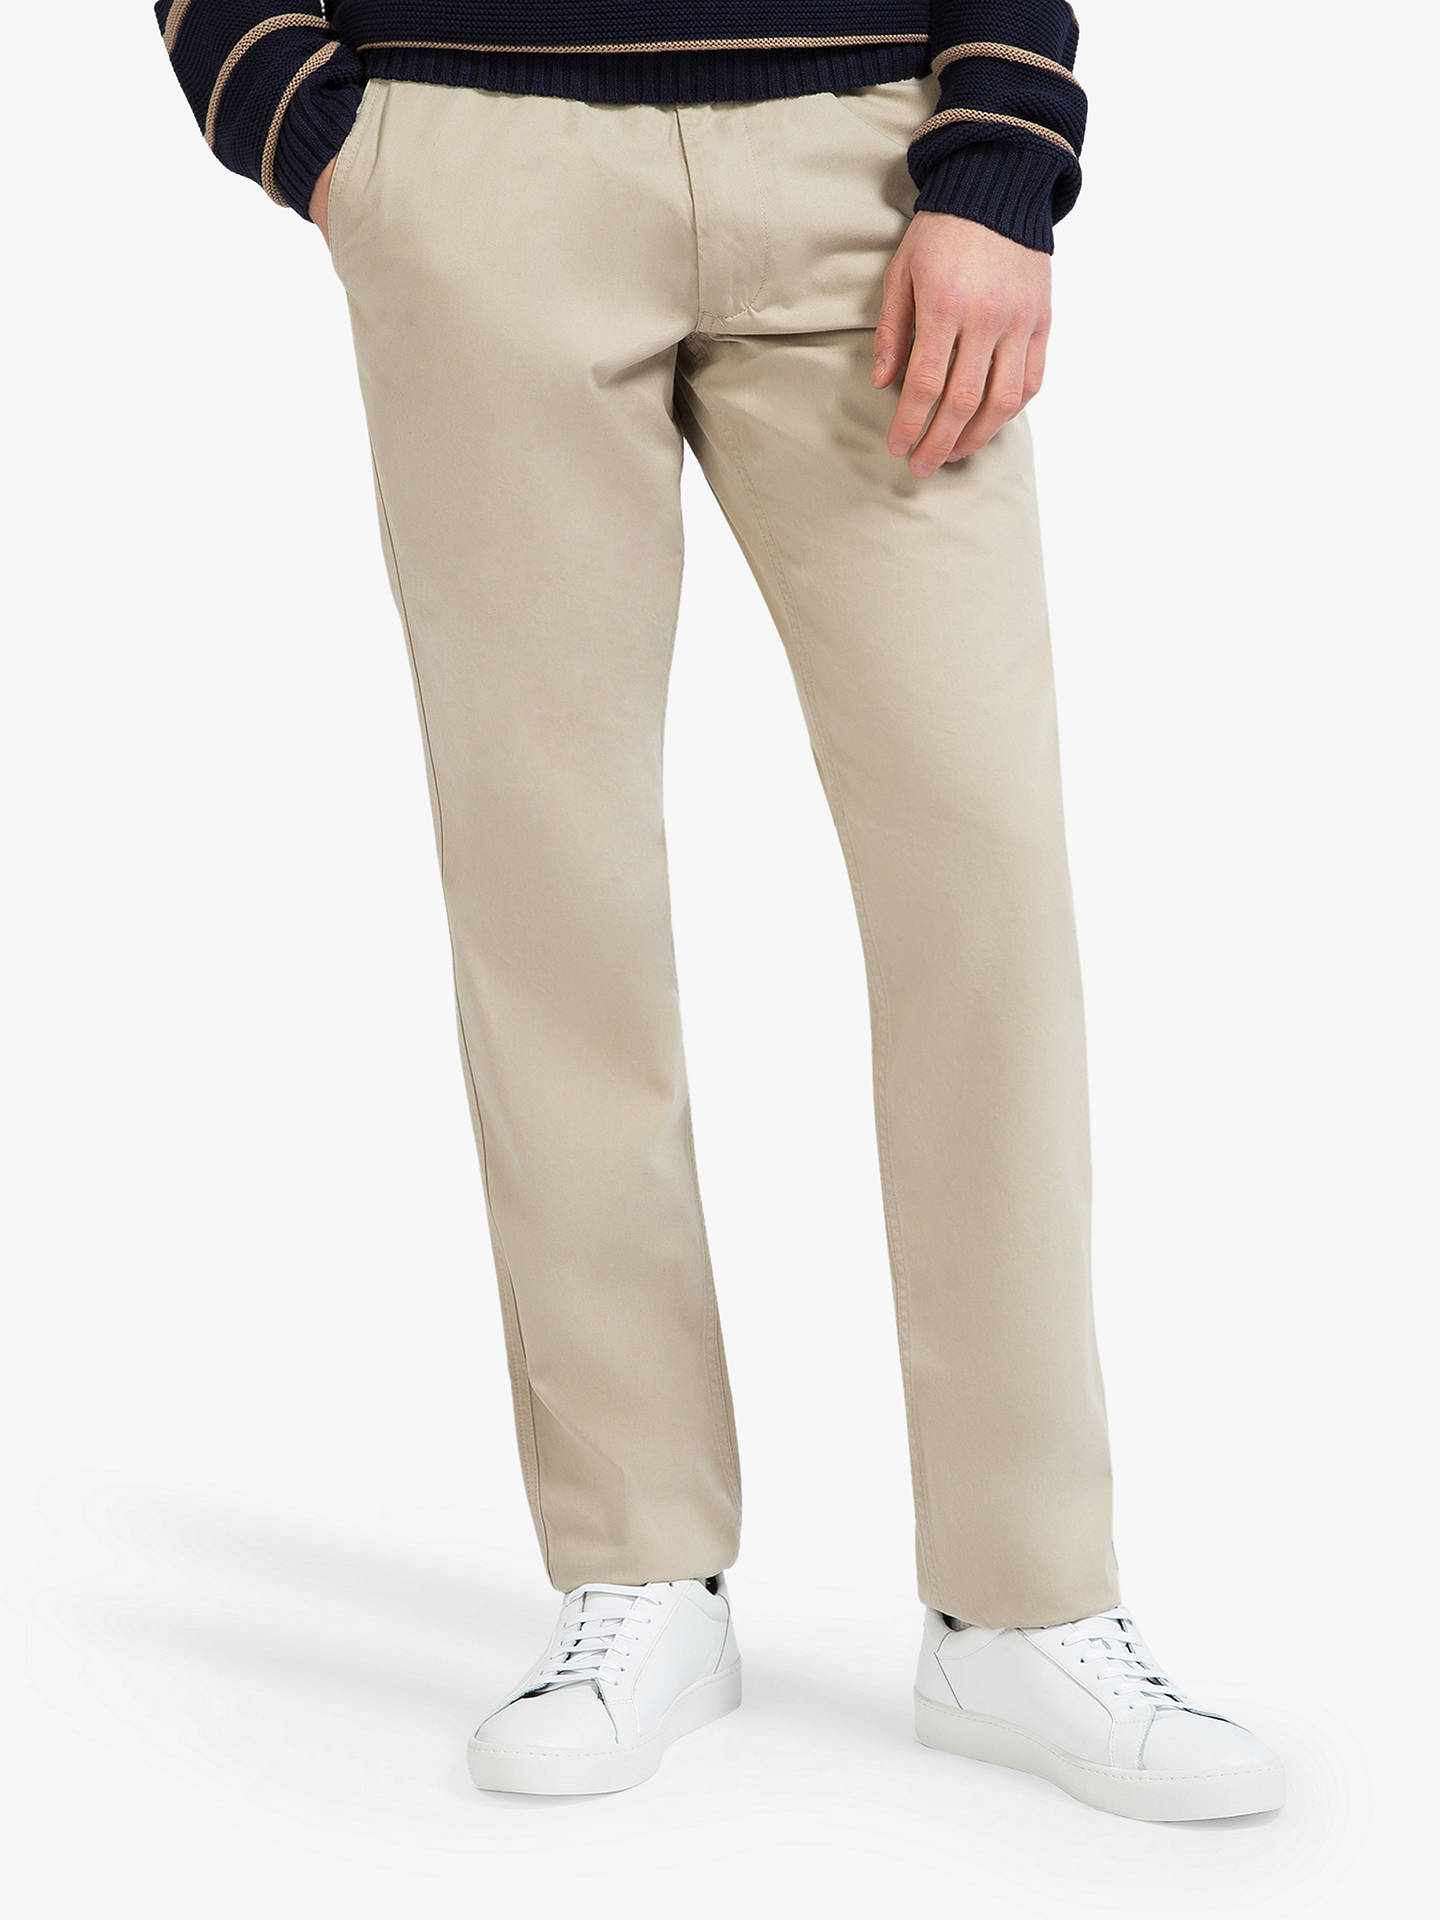 Buy Eden Park Pique Chinos, Natural, 38R Online at johnlewis.com